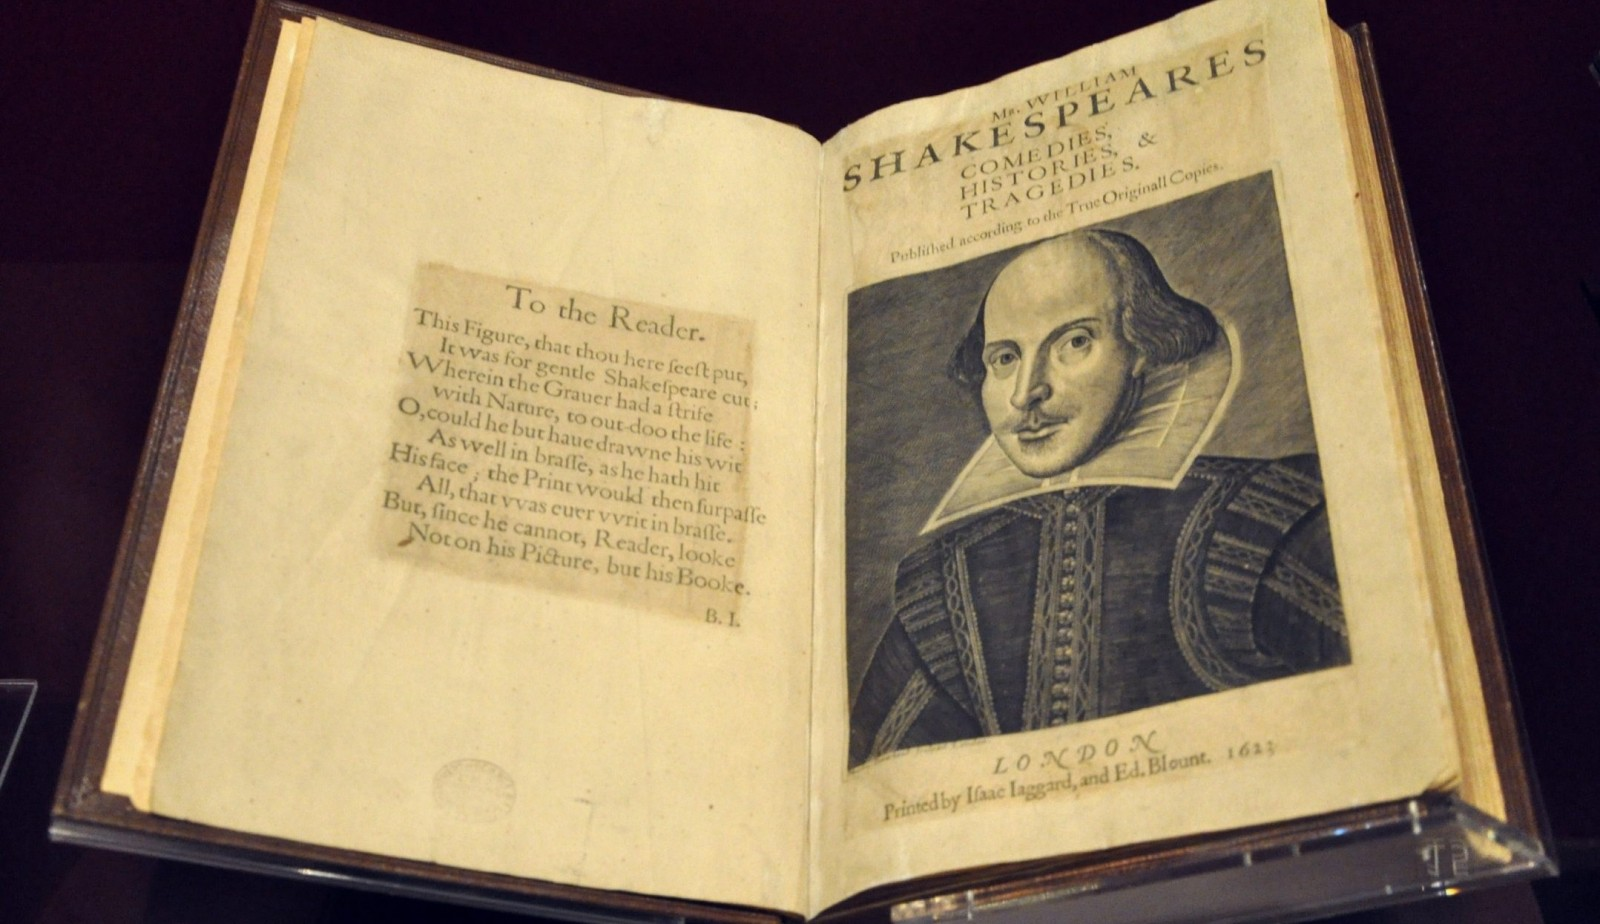 Buffalo has two copies of Shakespeare's rare First Folio, which will be the subject of two lectures on March 28.